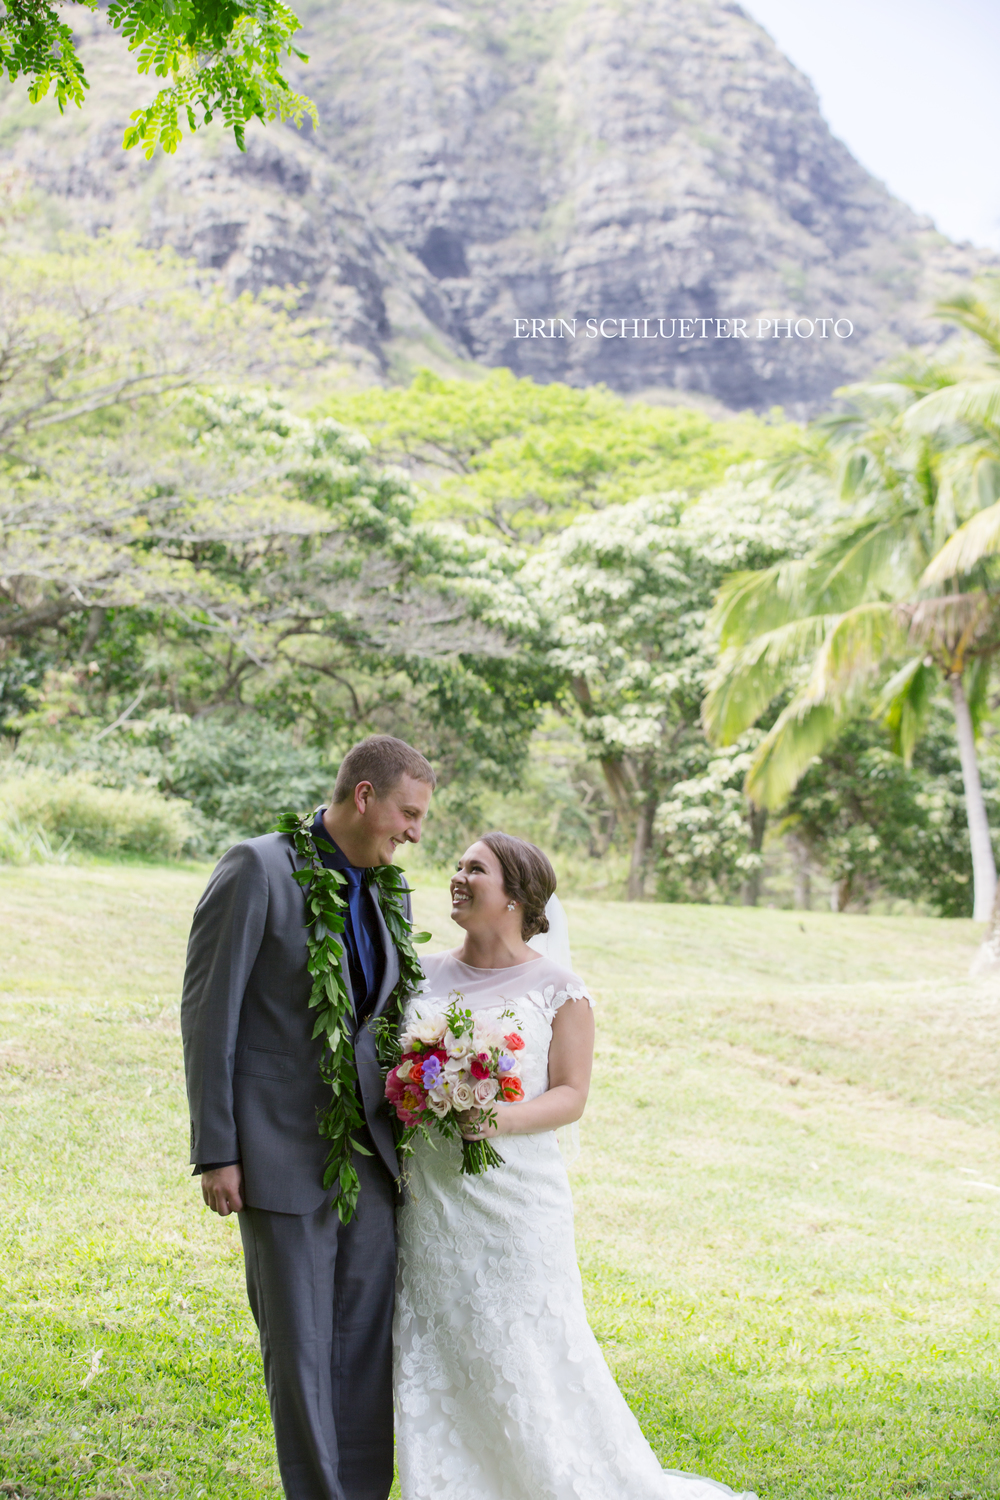 The wedding took place at the gorgeous Kualoa Ranch Paliku Gardens. The Kualoa Ranch is beautiful, it's no surprise that it has been the film site of many Hollywood shows and movies. (Jurassic Park, 50 first Dates and Godzilla to name a few).